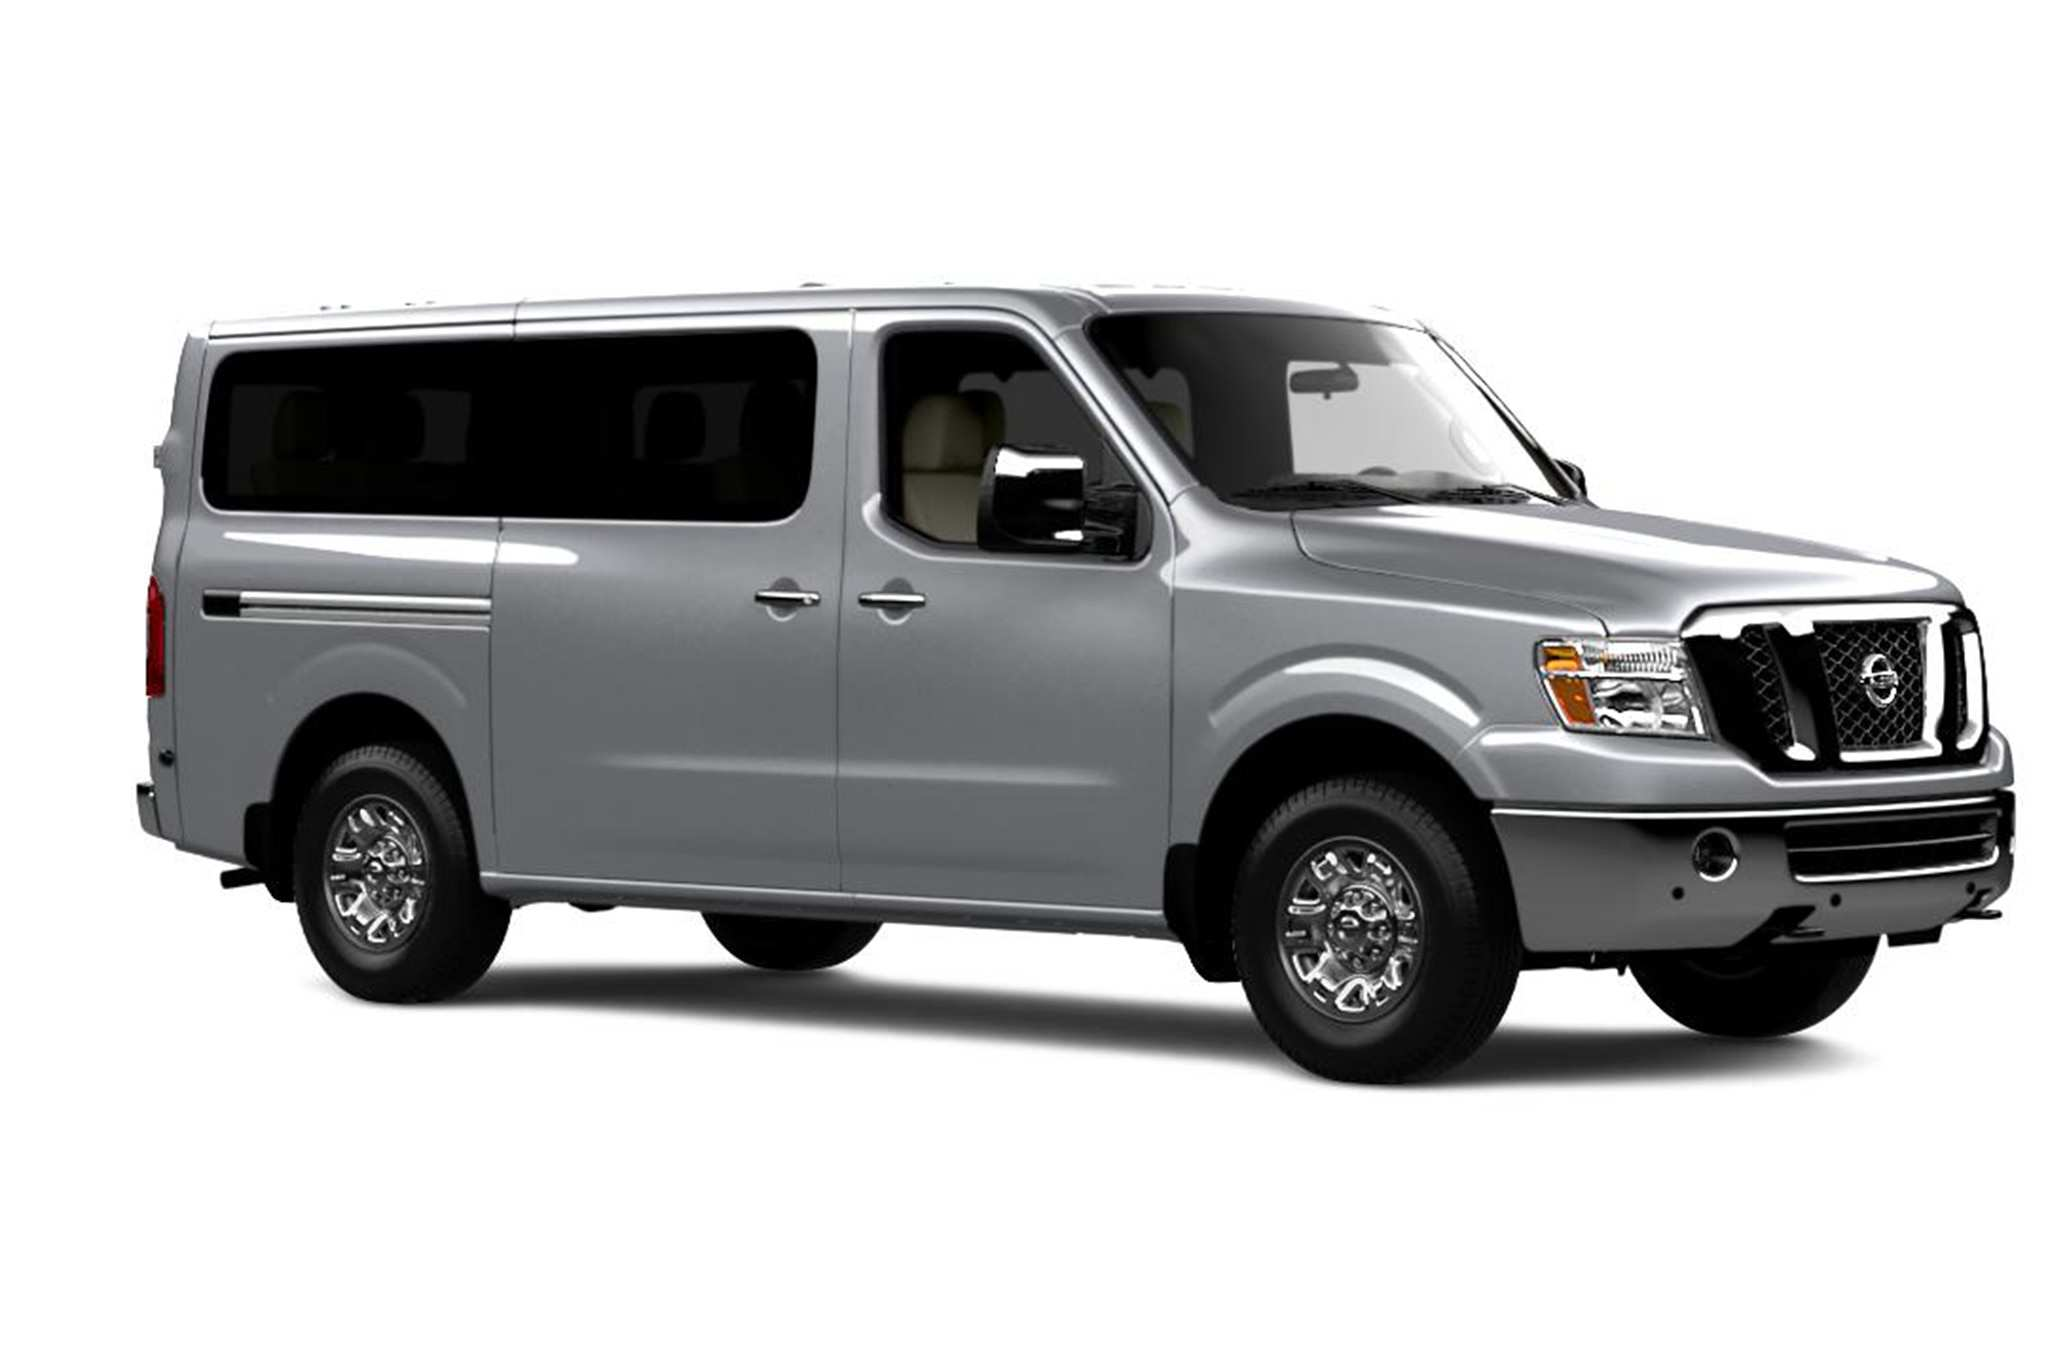 62 Best Review 2020 Nissan Nv3500 Picture with 2020 Nissan Nv3500